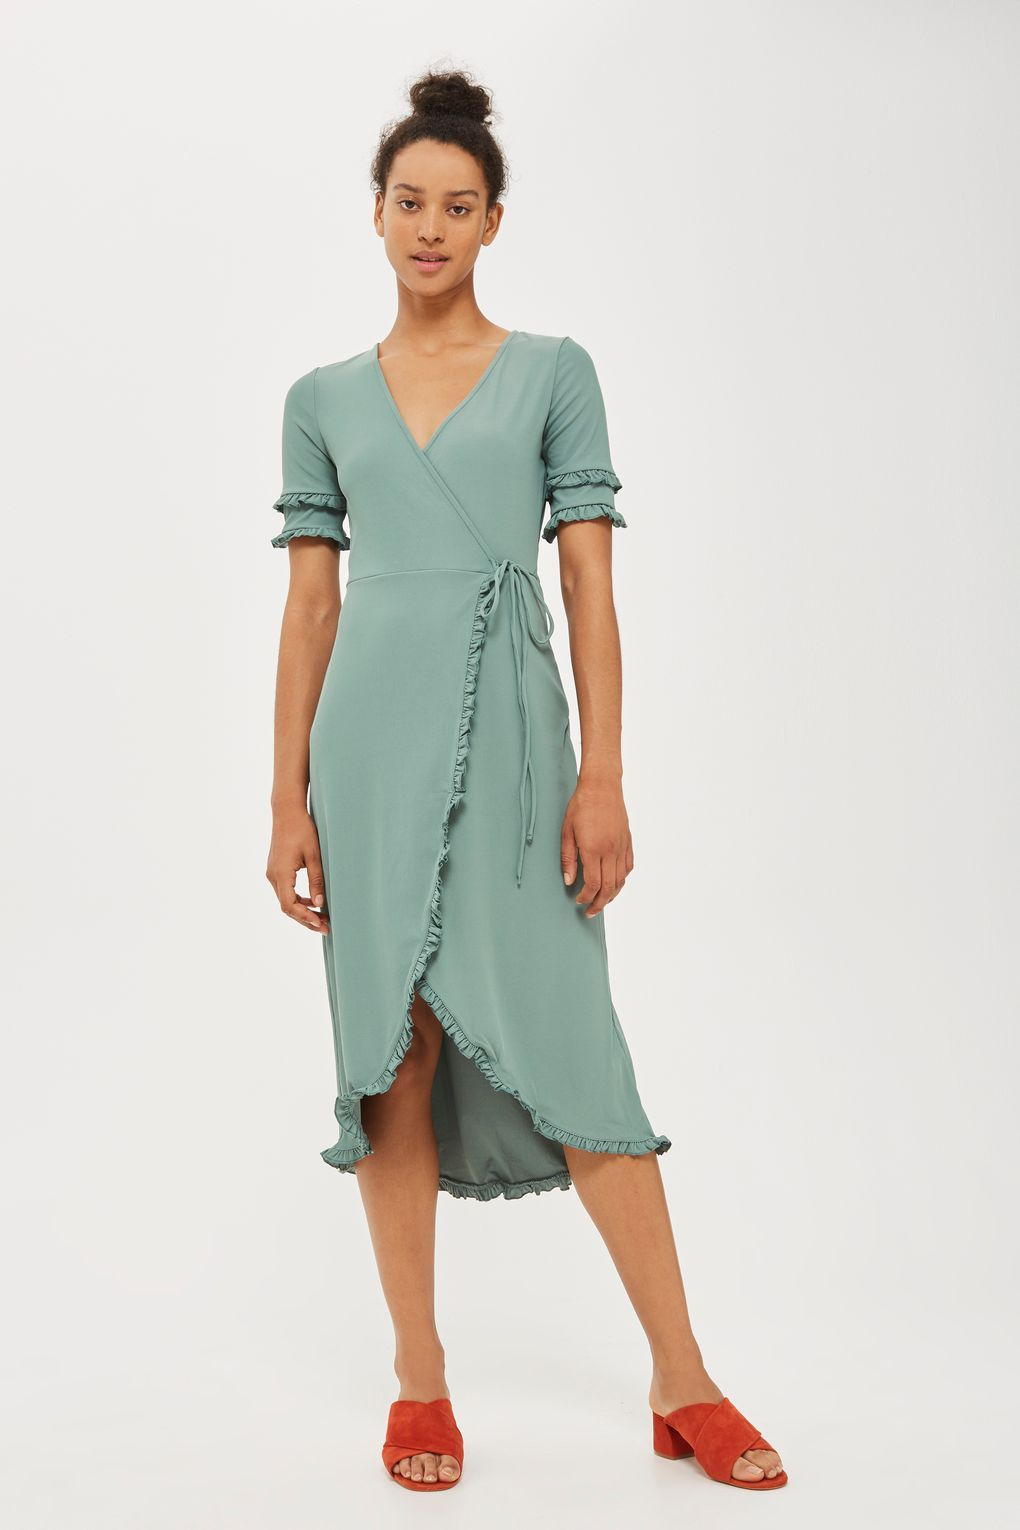 Frill Sleeve Wrap Midi Dress | Midi dresses, Topshop and Wraps